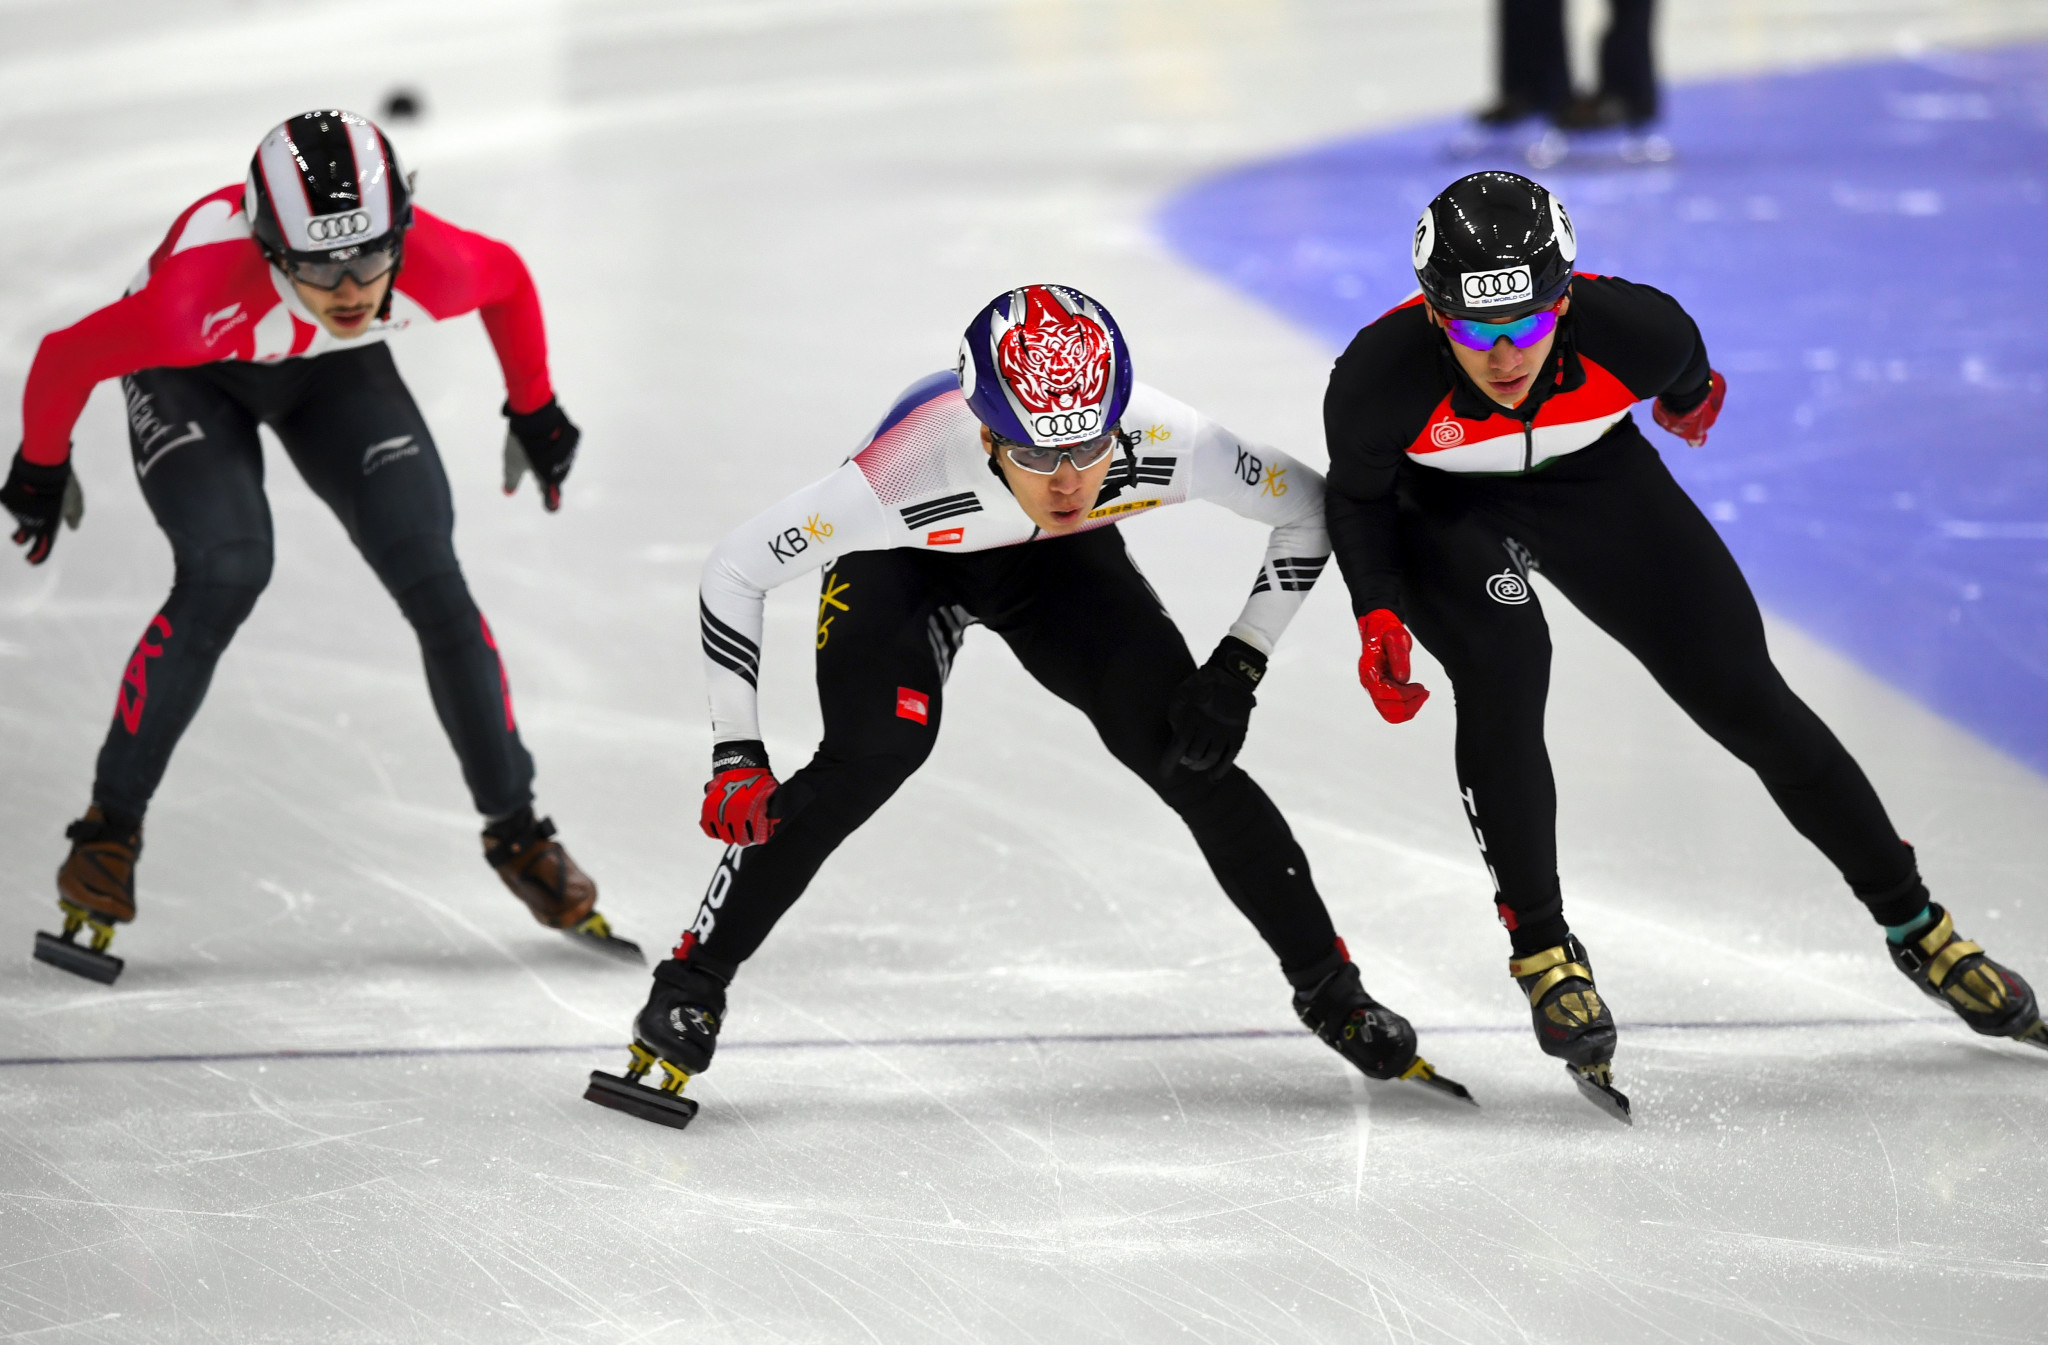 Shaolin Sandor Liu, right, of Hungary and Hwang Dae-Heon, centre, of South Korea compete during the men's 1000 metre final at the ISU World Cup Short Track Speed Skating in Seoul ©Getty Images